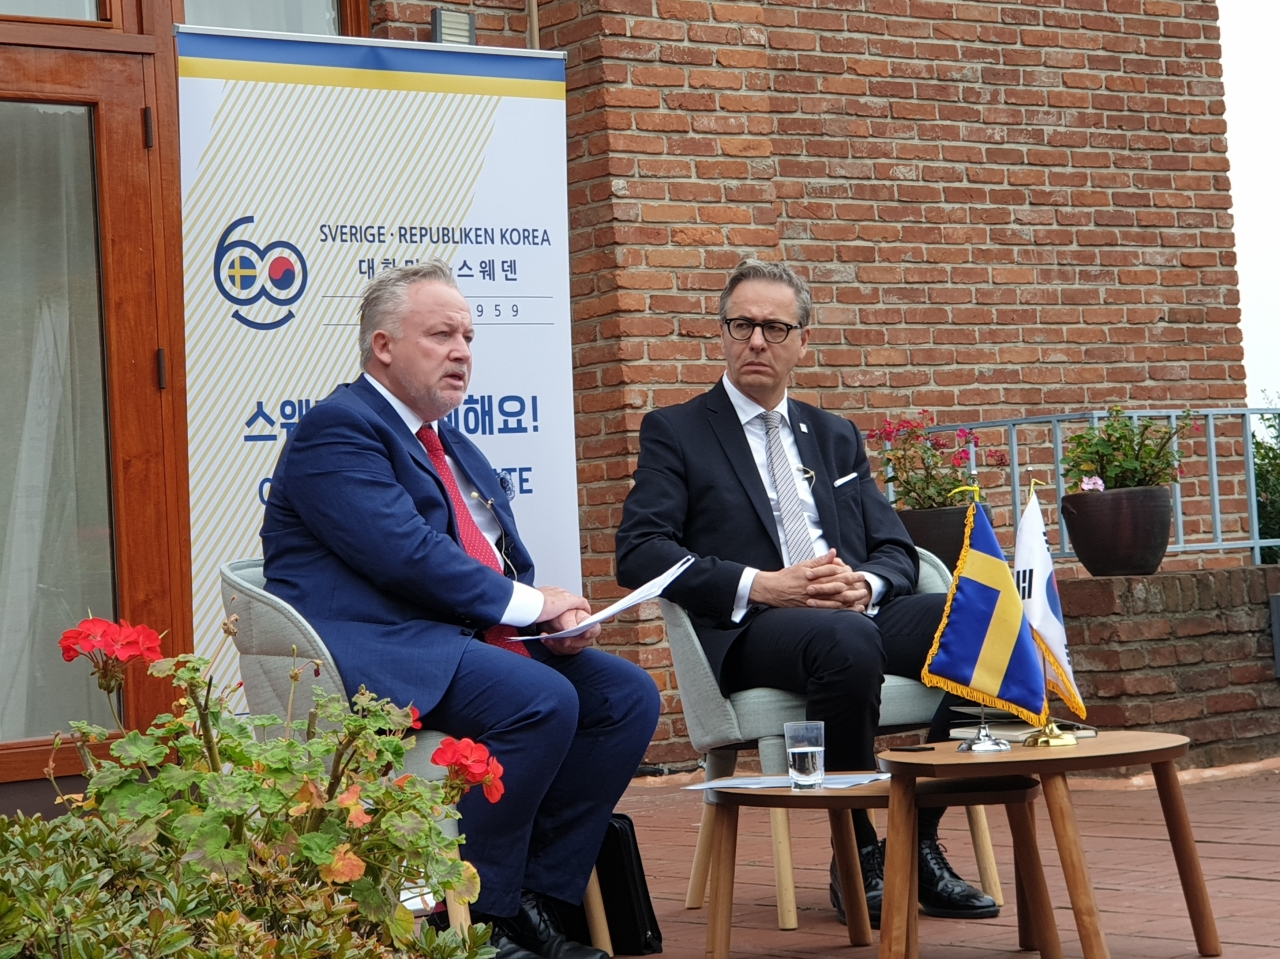 Special envoy of the Swedish government to North Korea Kent Rolf Magnus Harstedt (left) speaks at a press conference at the Swedish Embassy in Seoul on Wednesday morning. (Kim Bo-gyung/The Korea Herald)